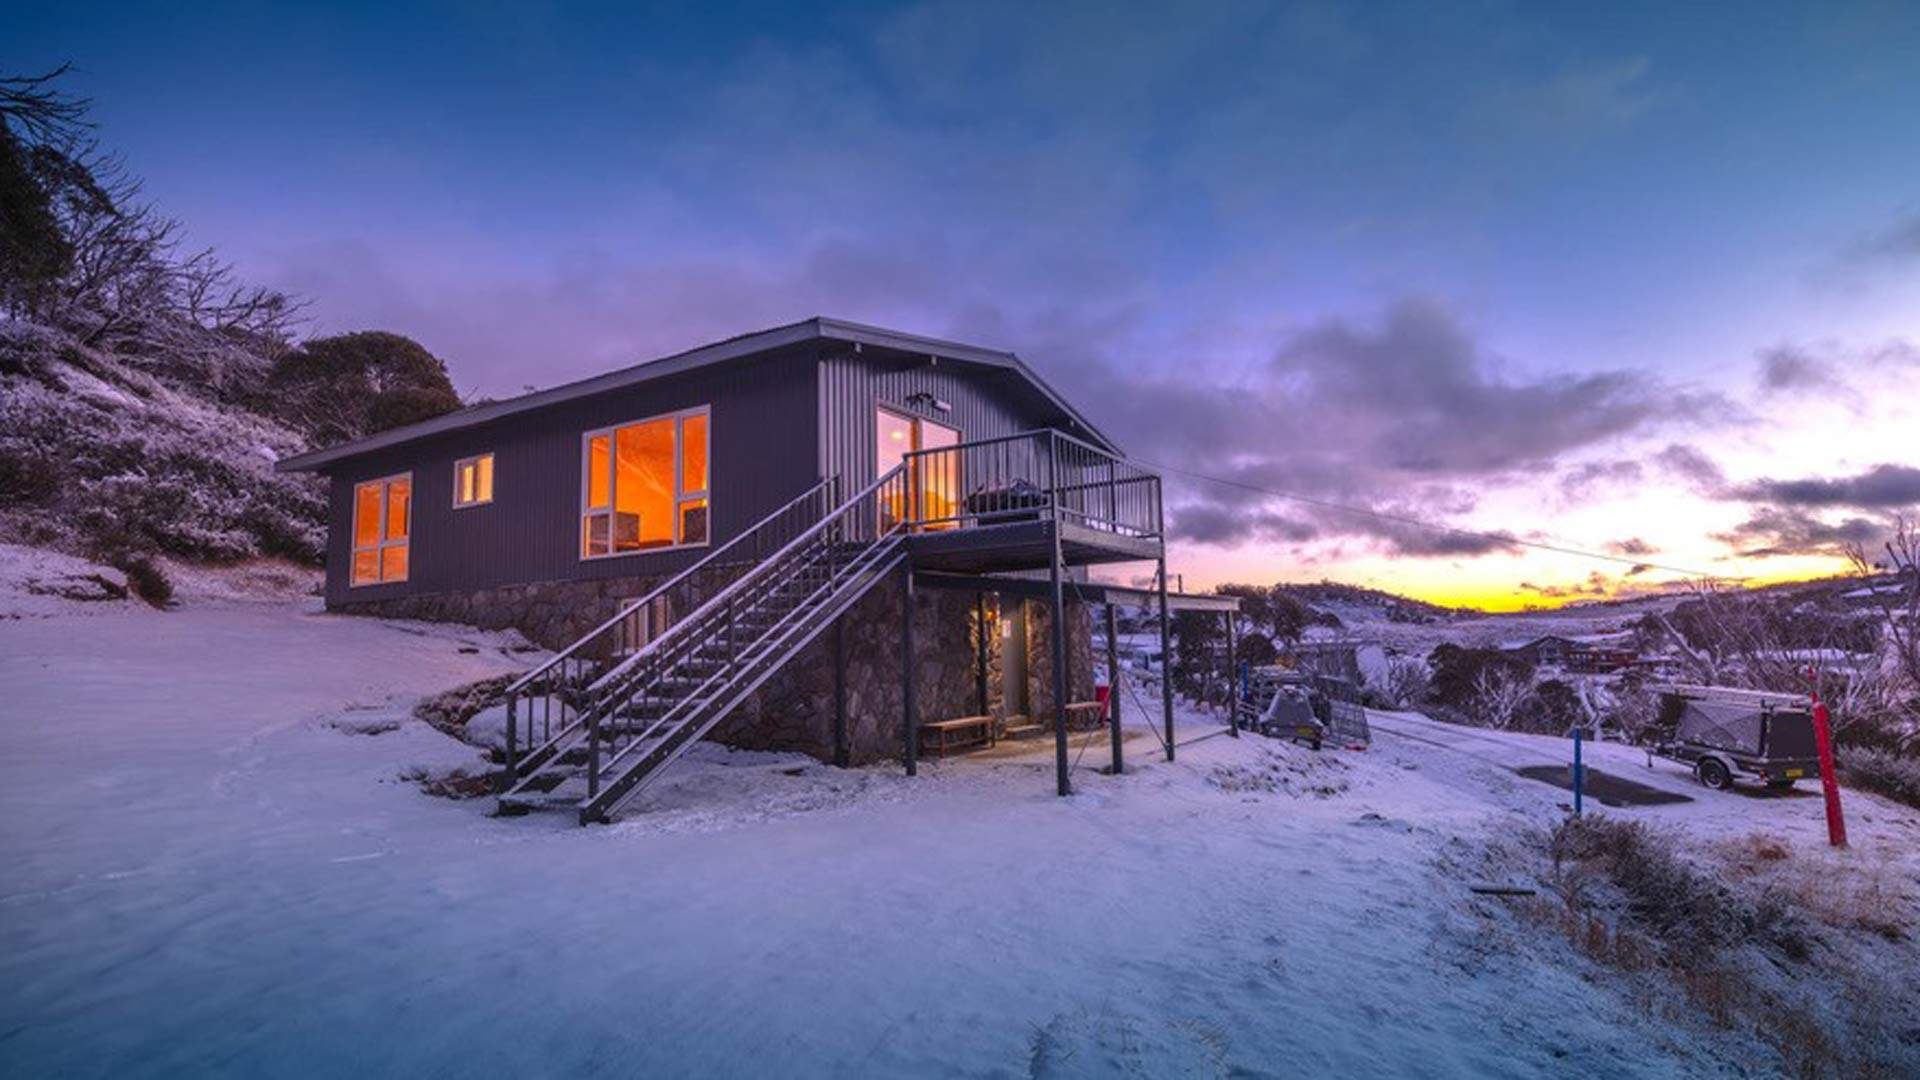 You Can Now Stay In This Secluded Ski-In Ski-Out Lodge in NSW